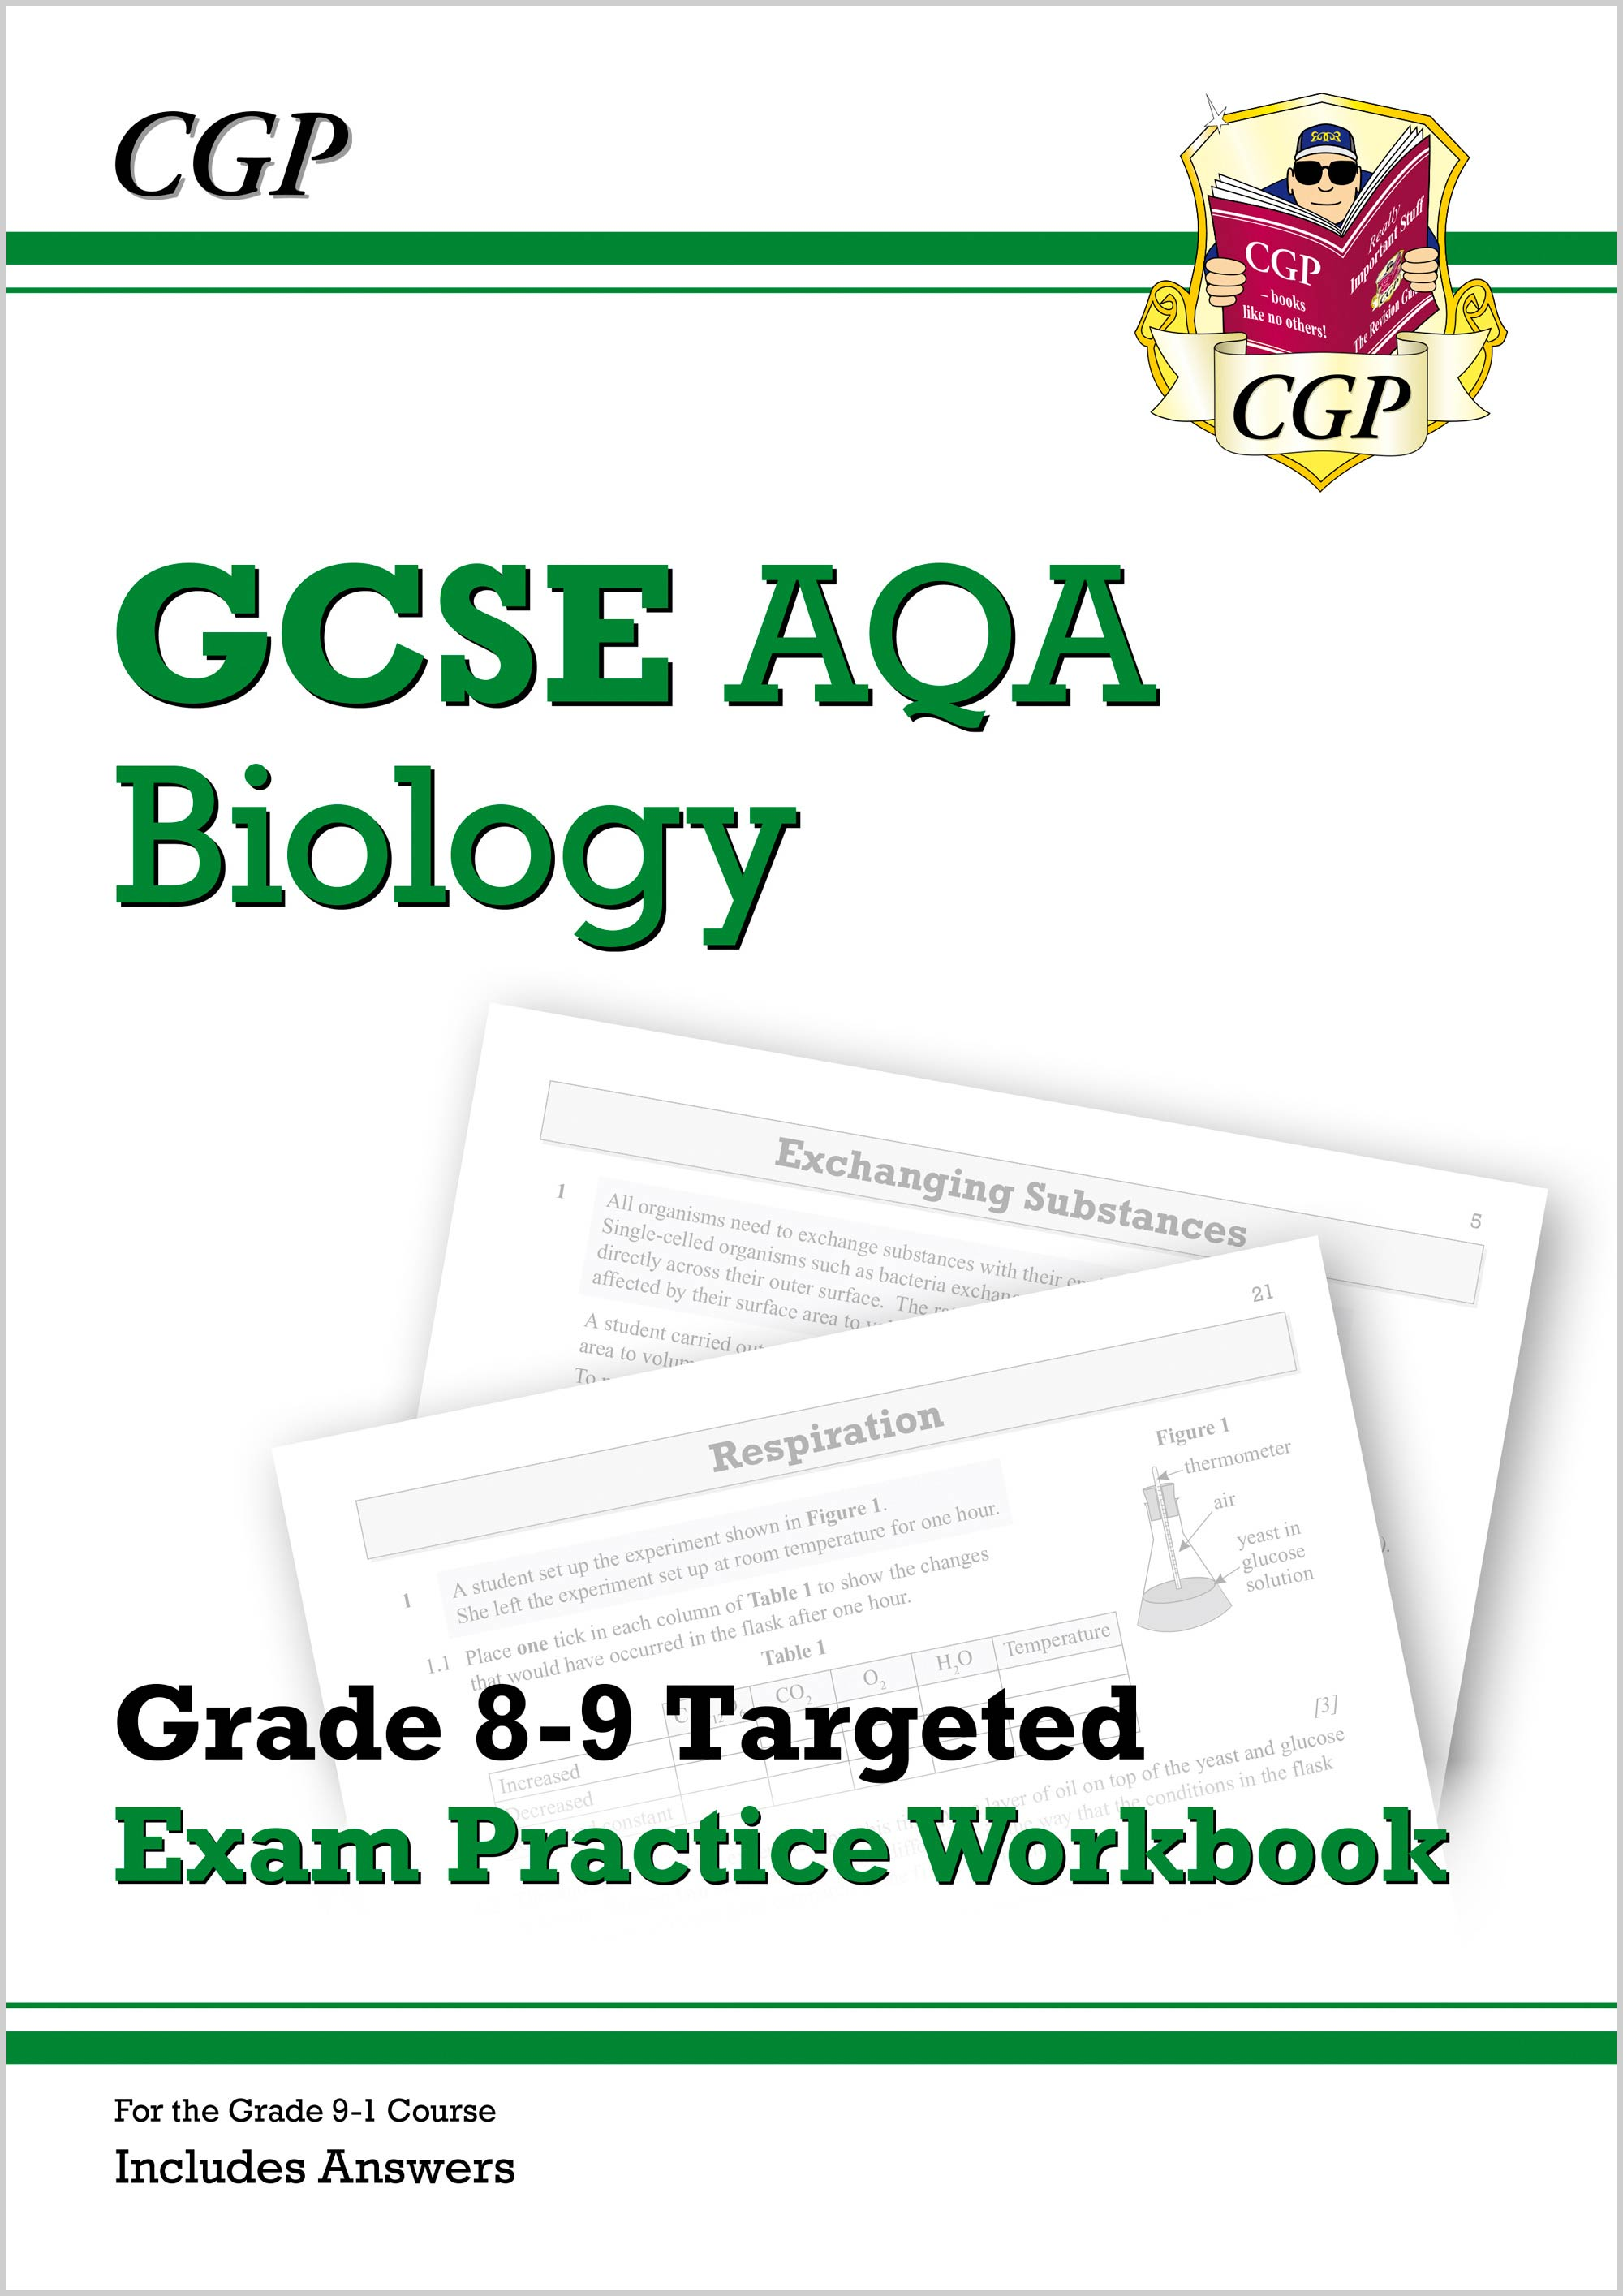 BA9Q41DK - New GCSE Biology AQA Grade 8-9 Targeted Exam Practice Workbook (includes Answers)